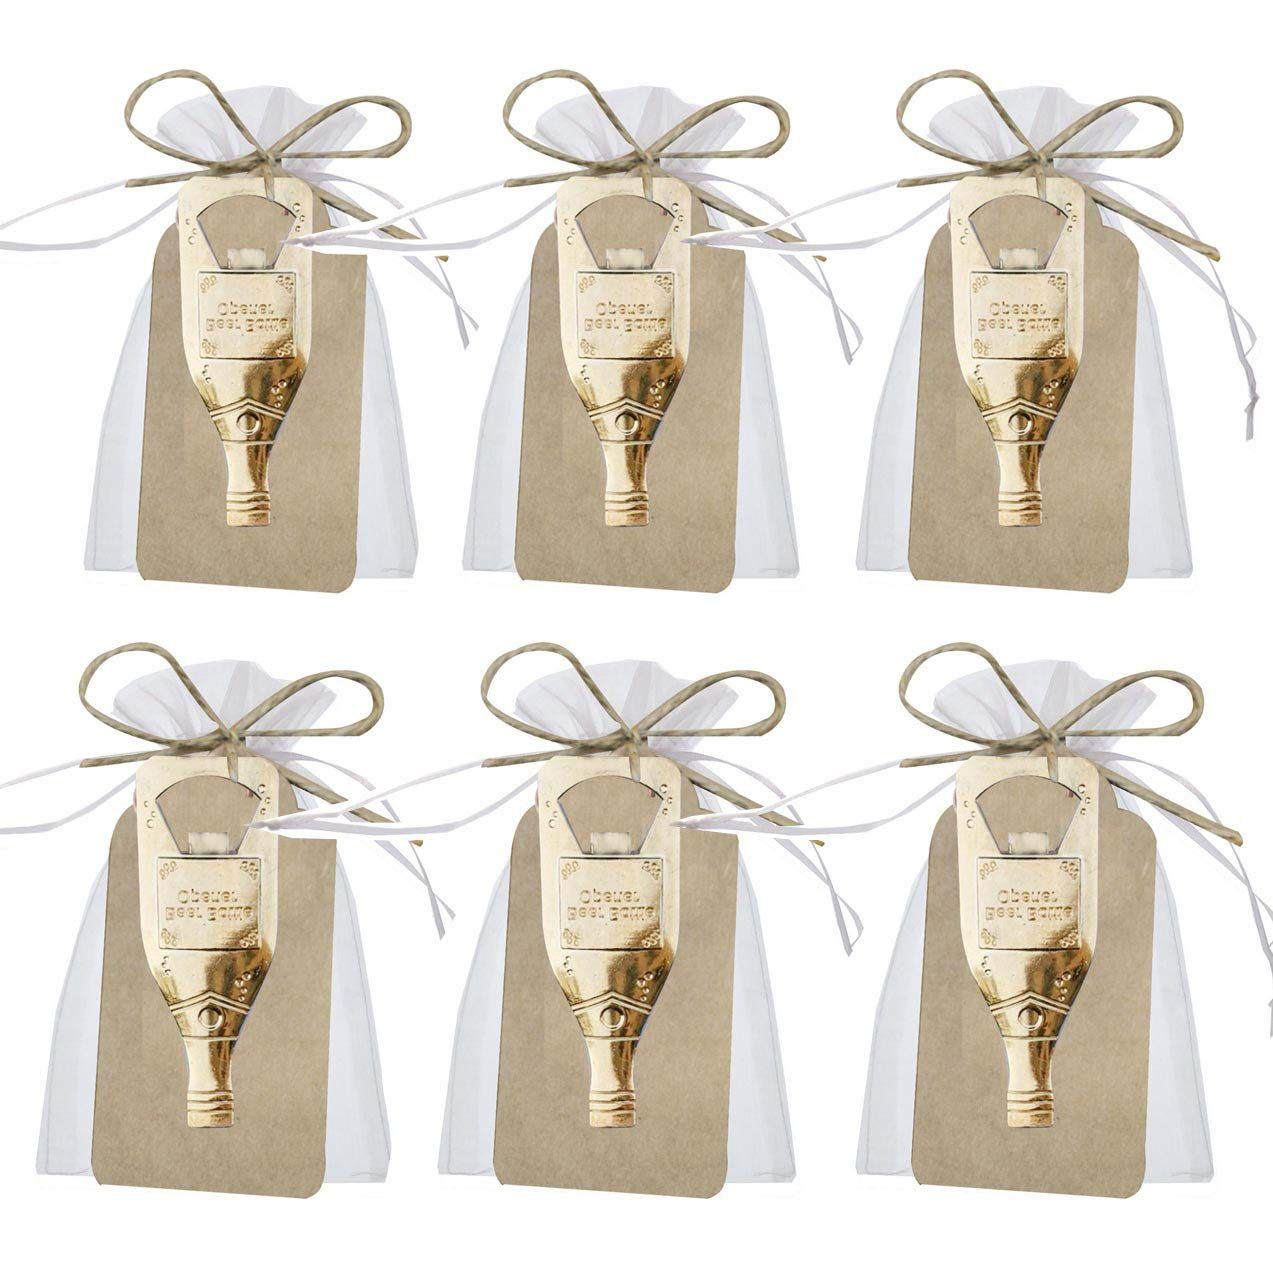 Awtlife 30 Pcs Rustic Vintage Beer Key Bottle Opener with Card Tag and Sheer Bag for Beer Wedding Party Favors